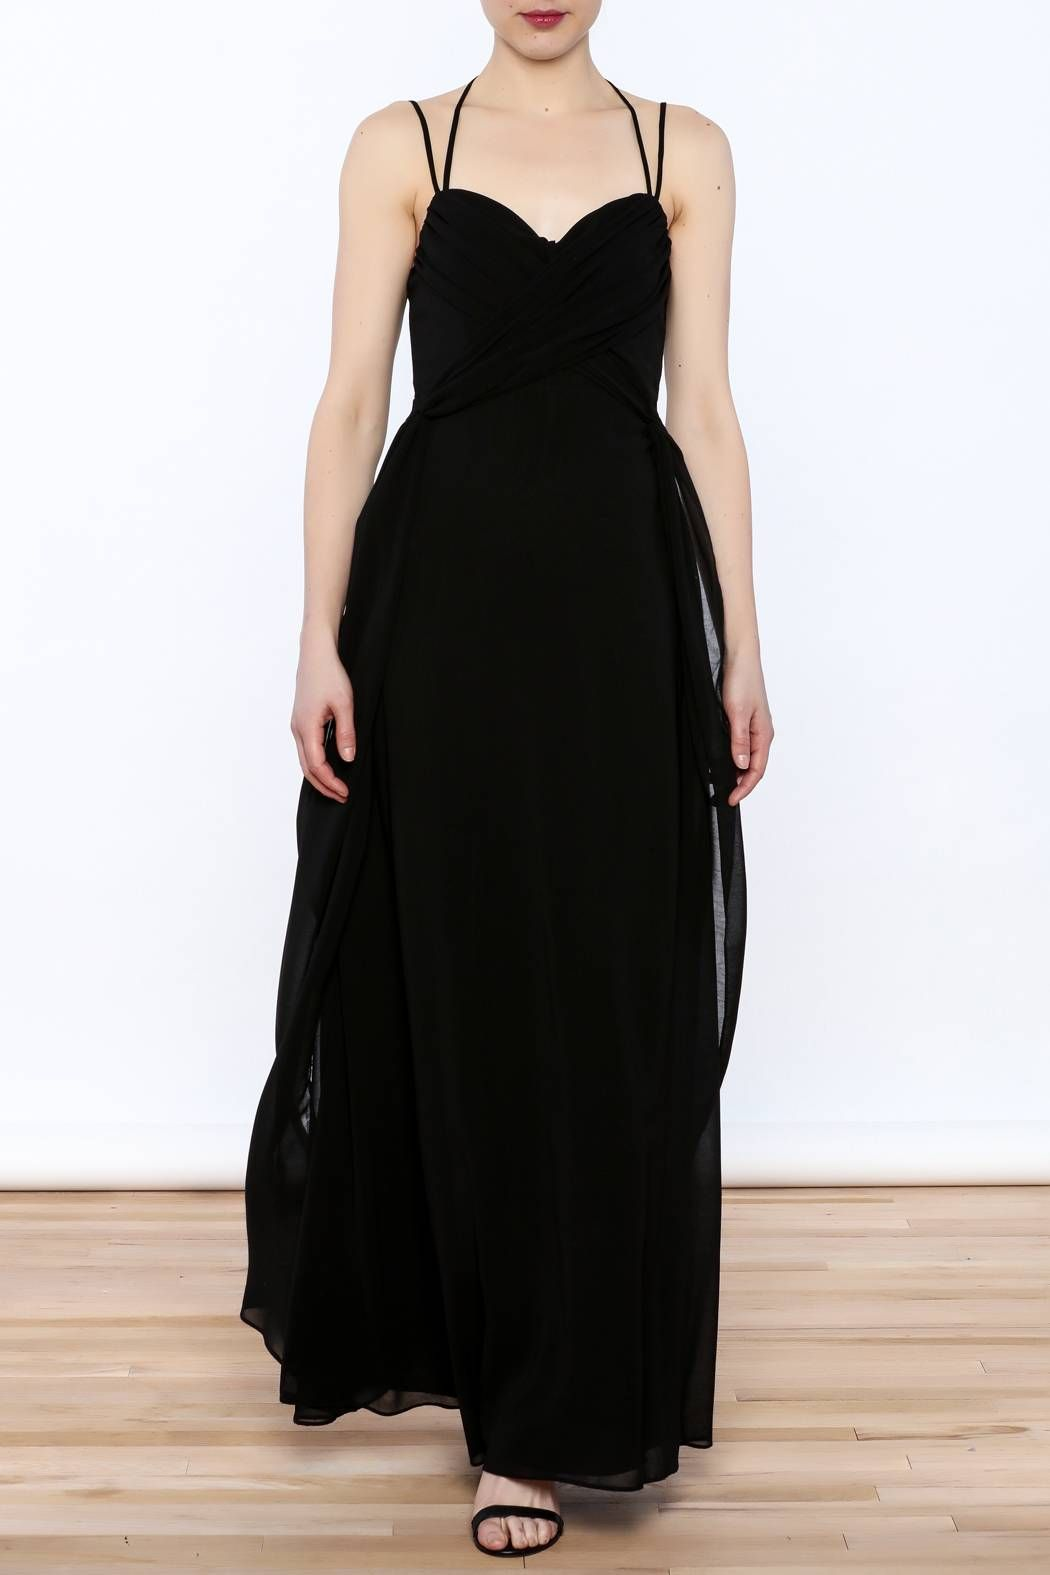 Floor Length Black Evening Gown With Wrap Top And Spaghetti Straps Fully Lined Elegant